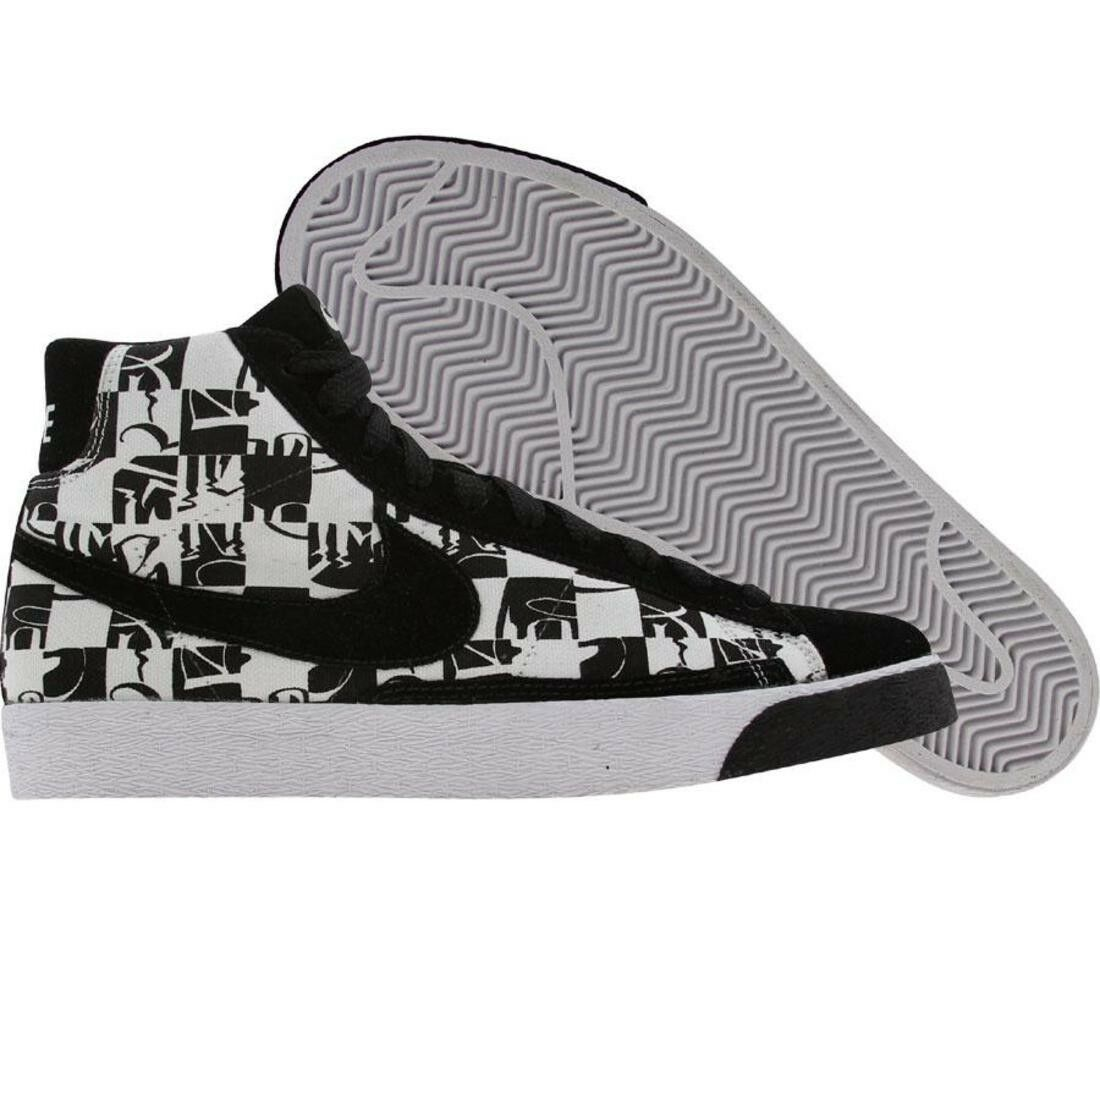 332286-101 Nike Blazer High Premium TZ Stussy x x Stussy Neighborhood 8 8.5 9 c96da8